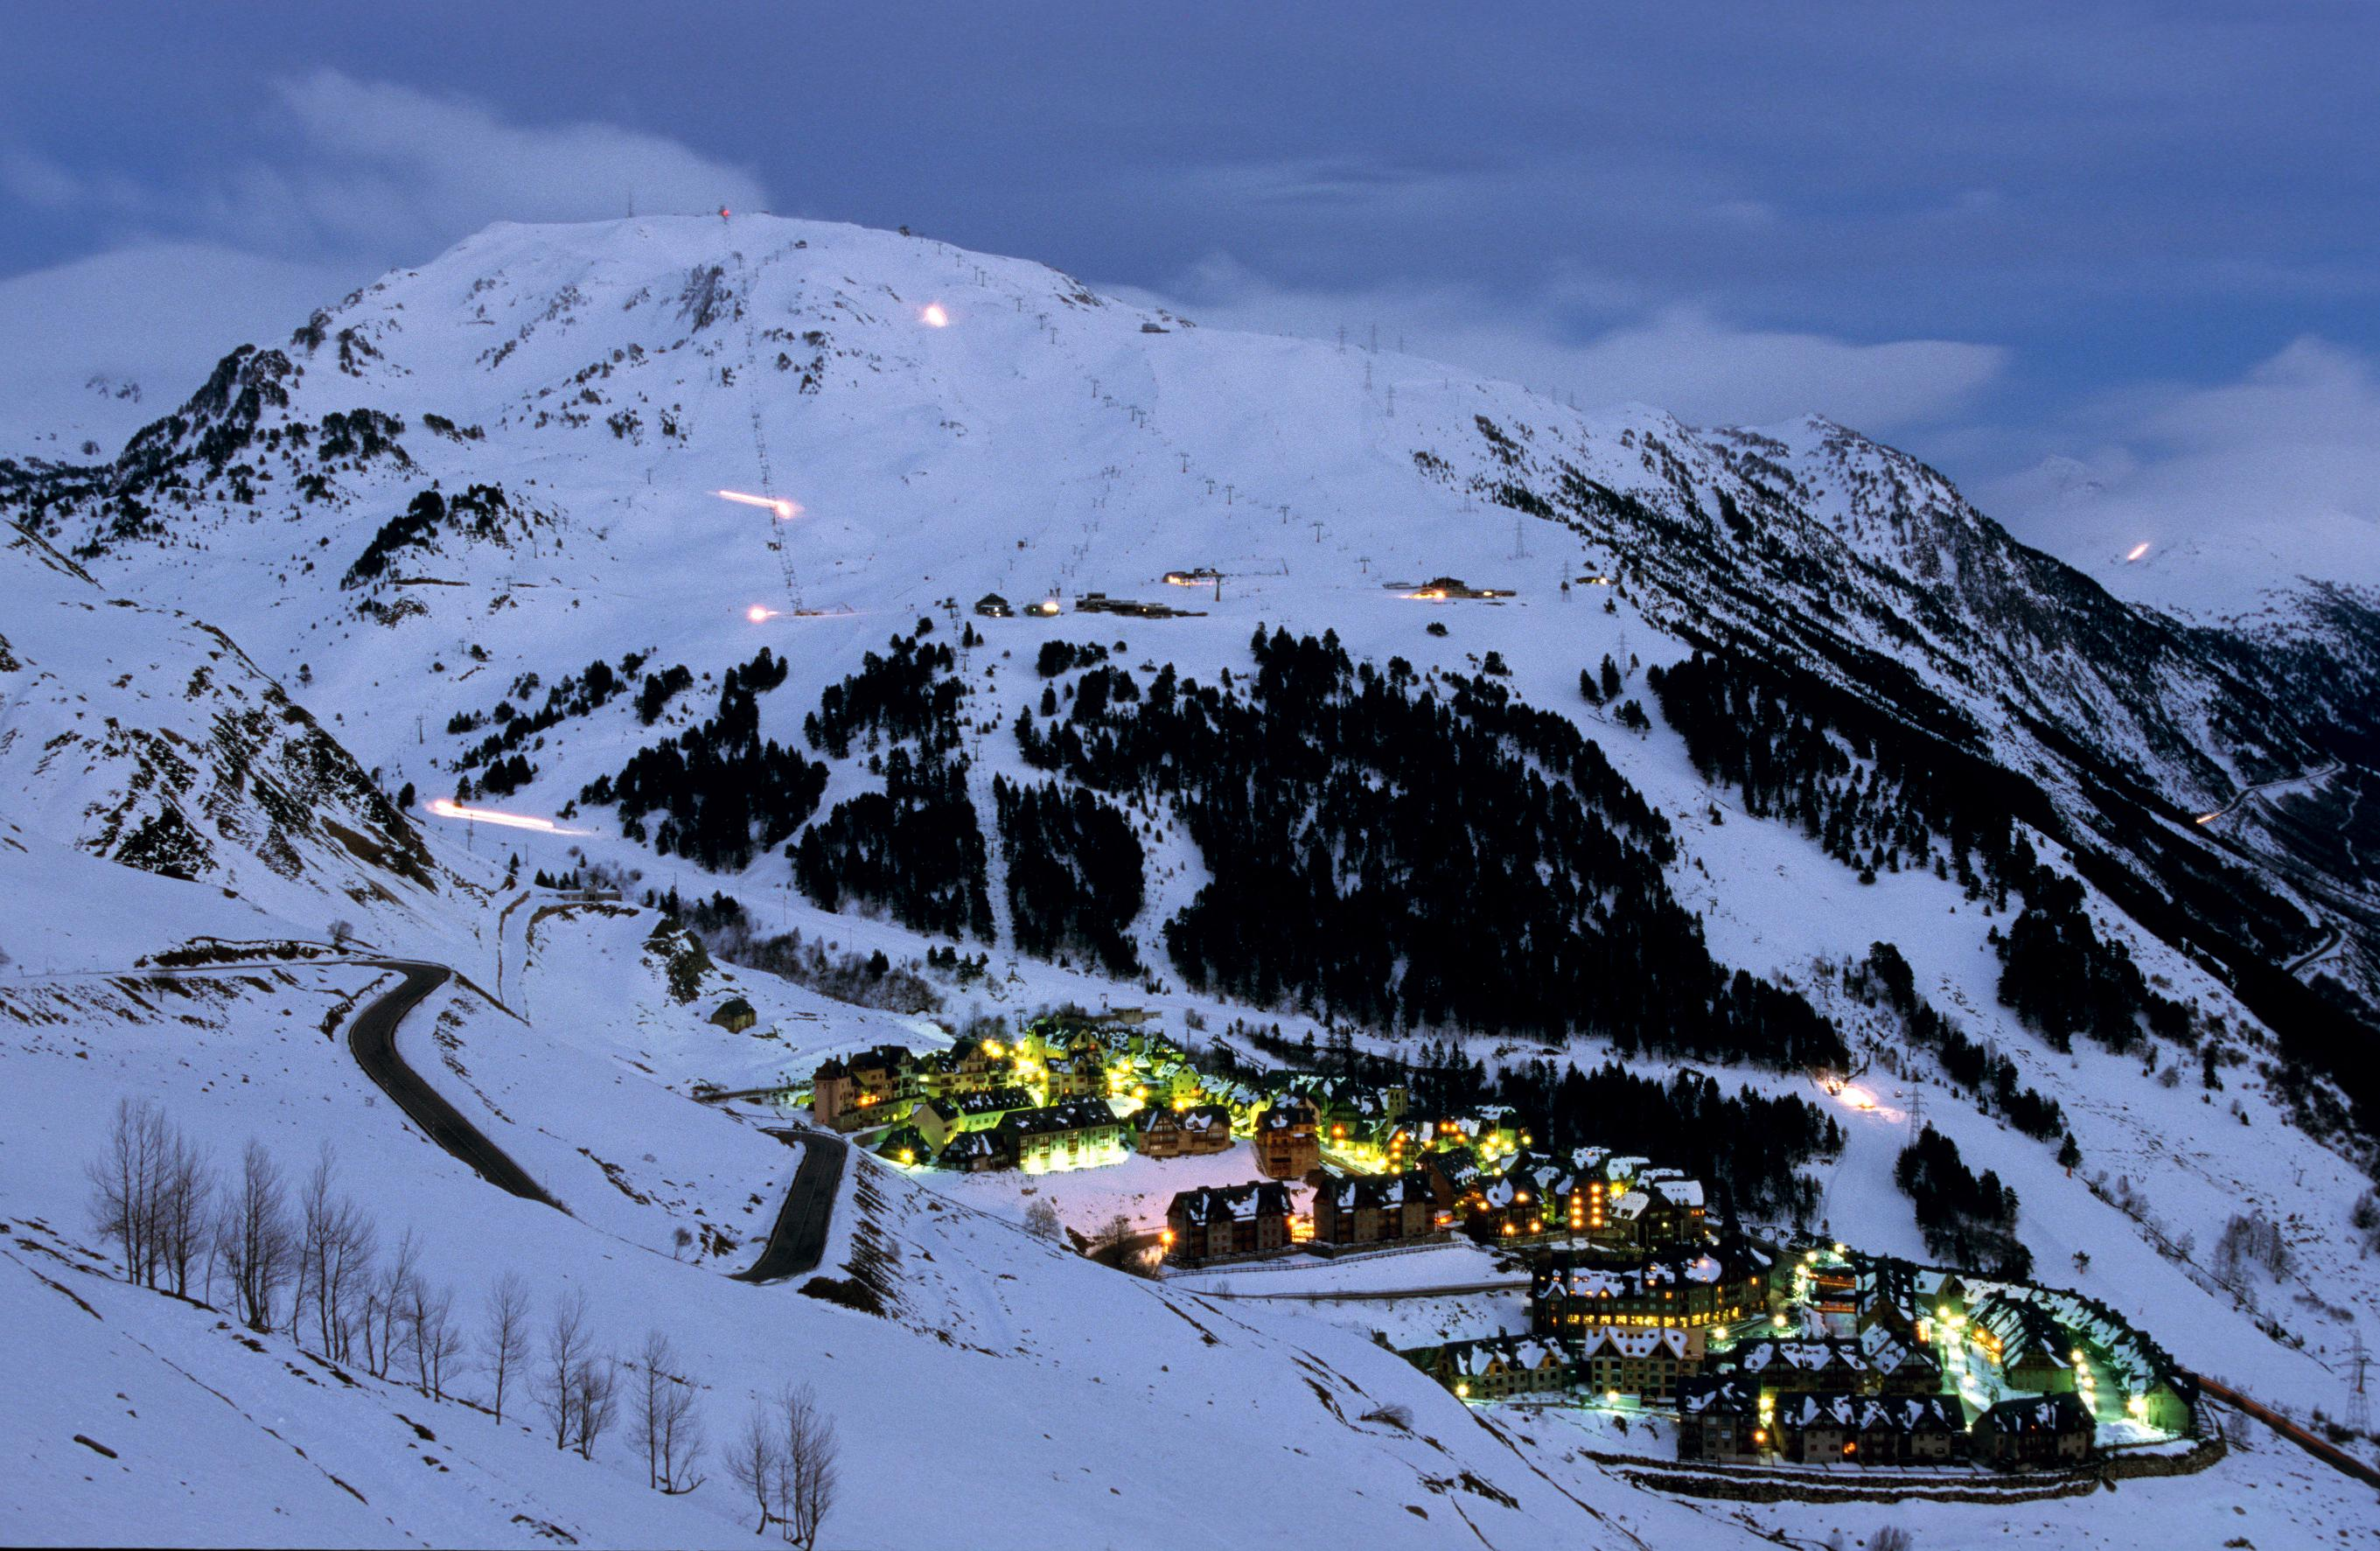 baqueira-beret-is-a-complete-resort-divided-in-3-areas-secret-world